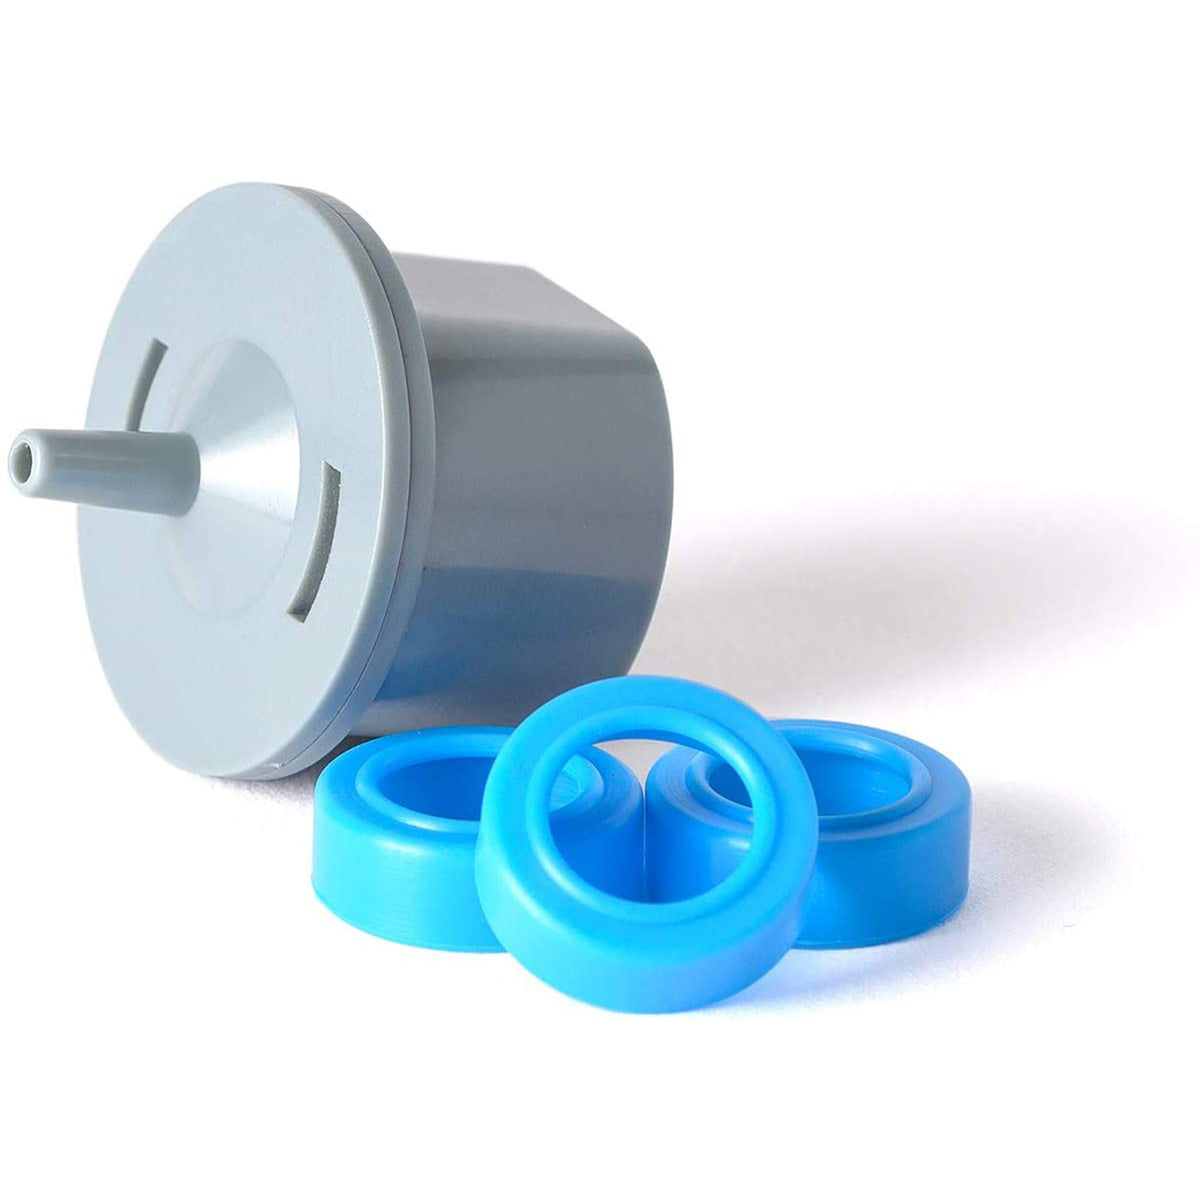 SoClean blue circle adapter and grey adapter for DreamStation Go and ResMed AirMini.